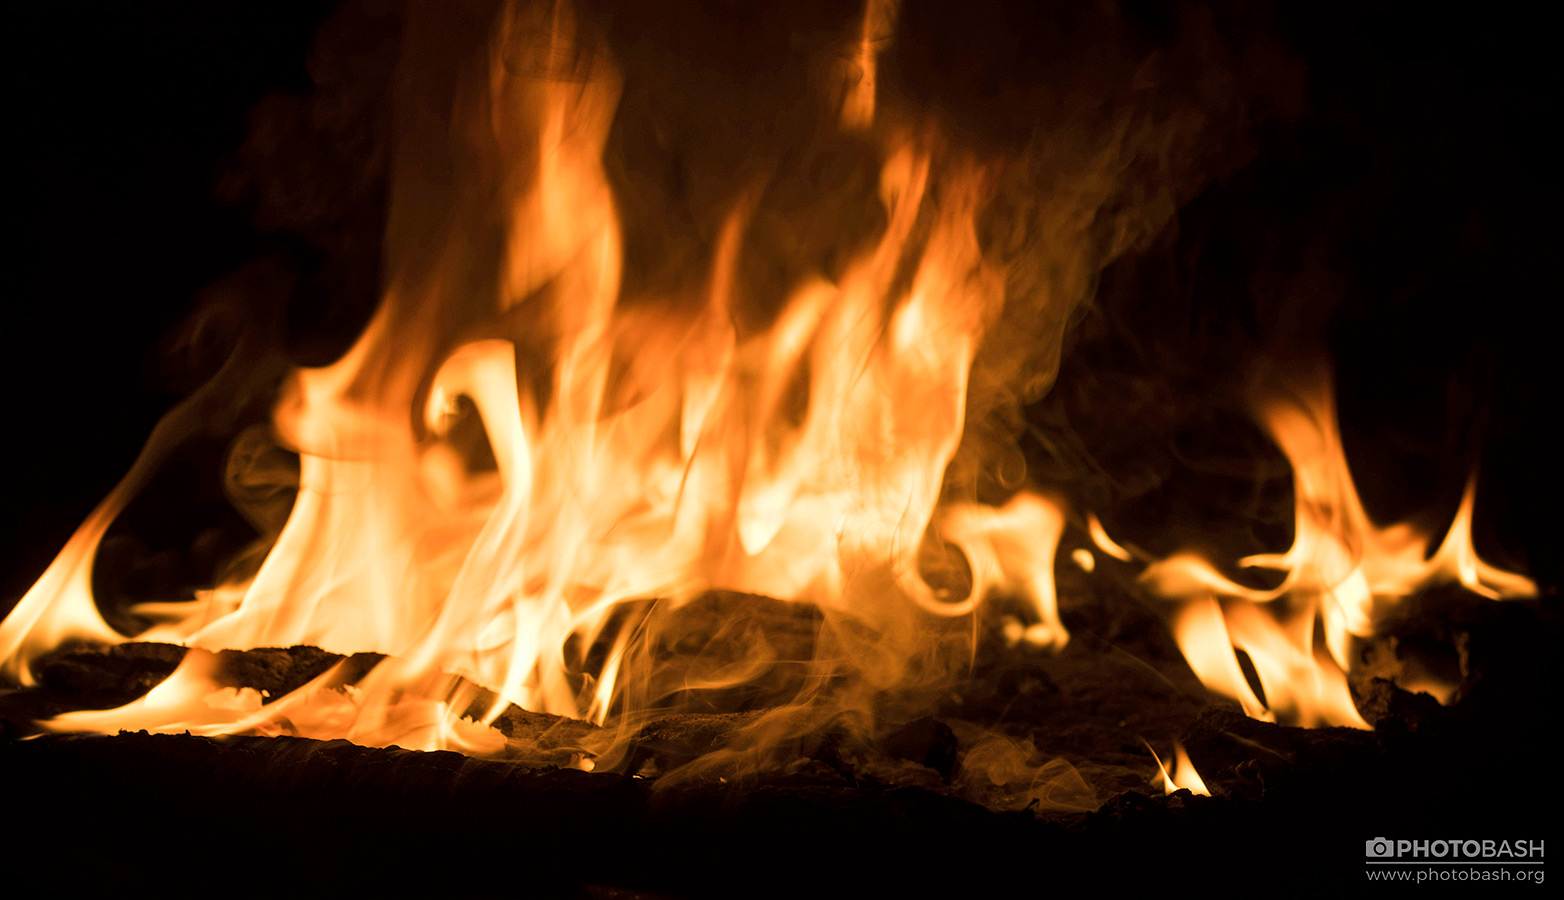 Fire-Flames-Burning-Campfire-Debris.jpg